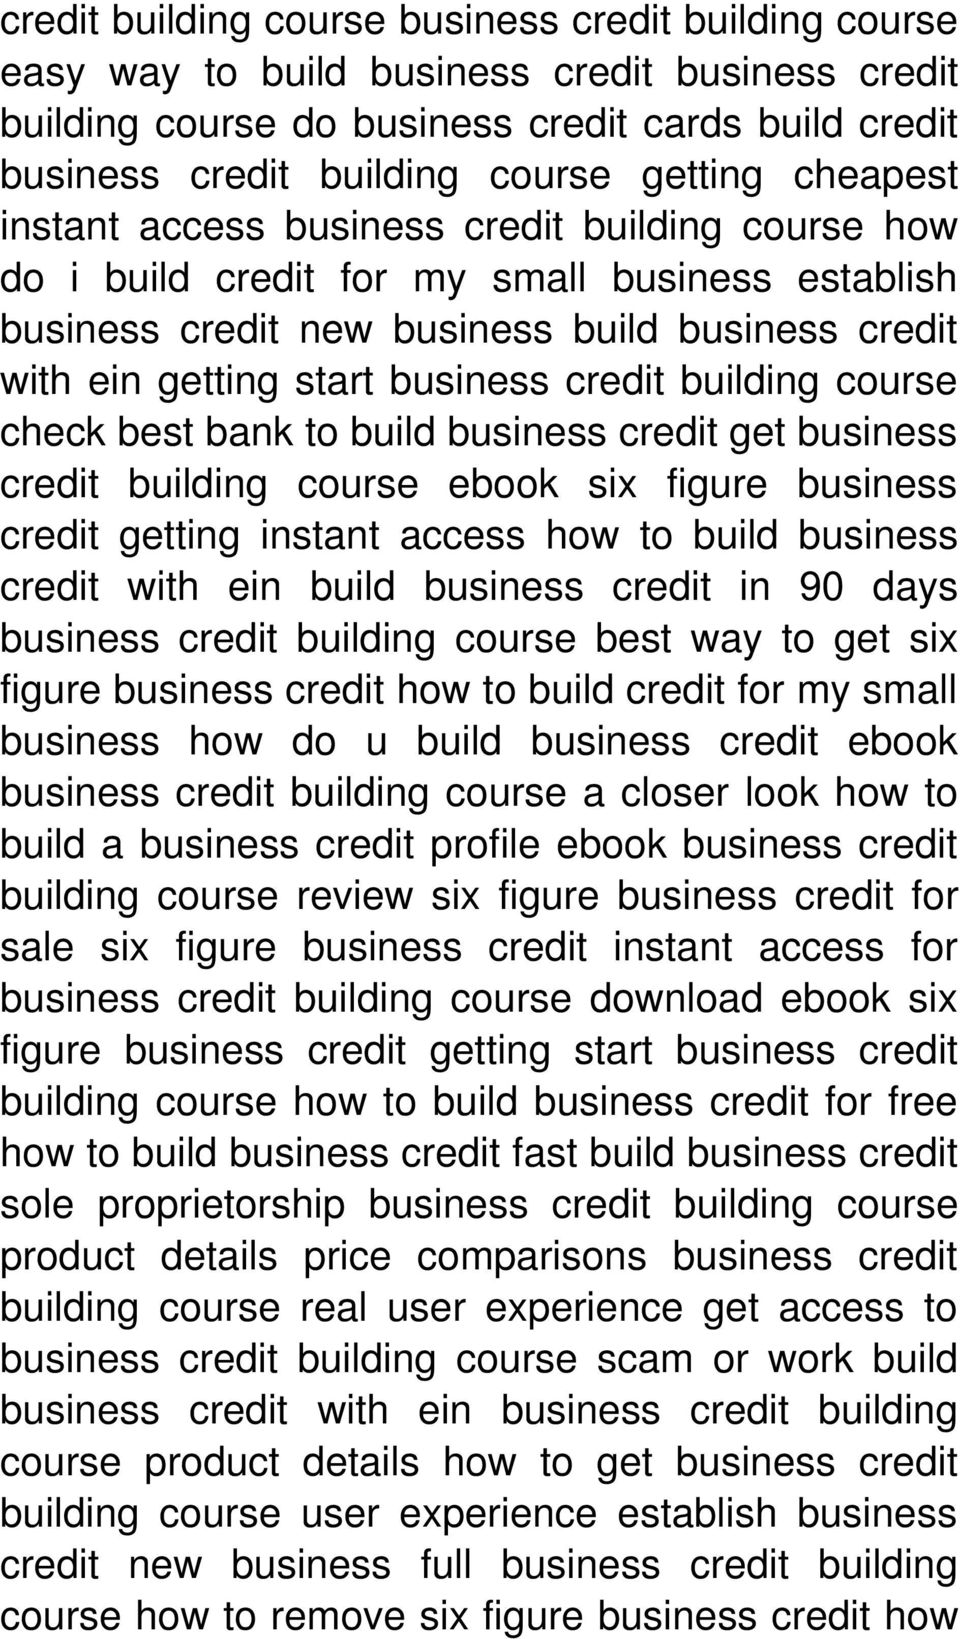 building course check best bank to build business credit get business credit building course ebook six figure business credit getting instant access how to build business credit with ein build